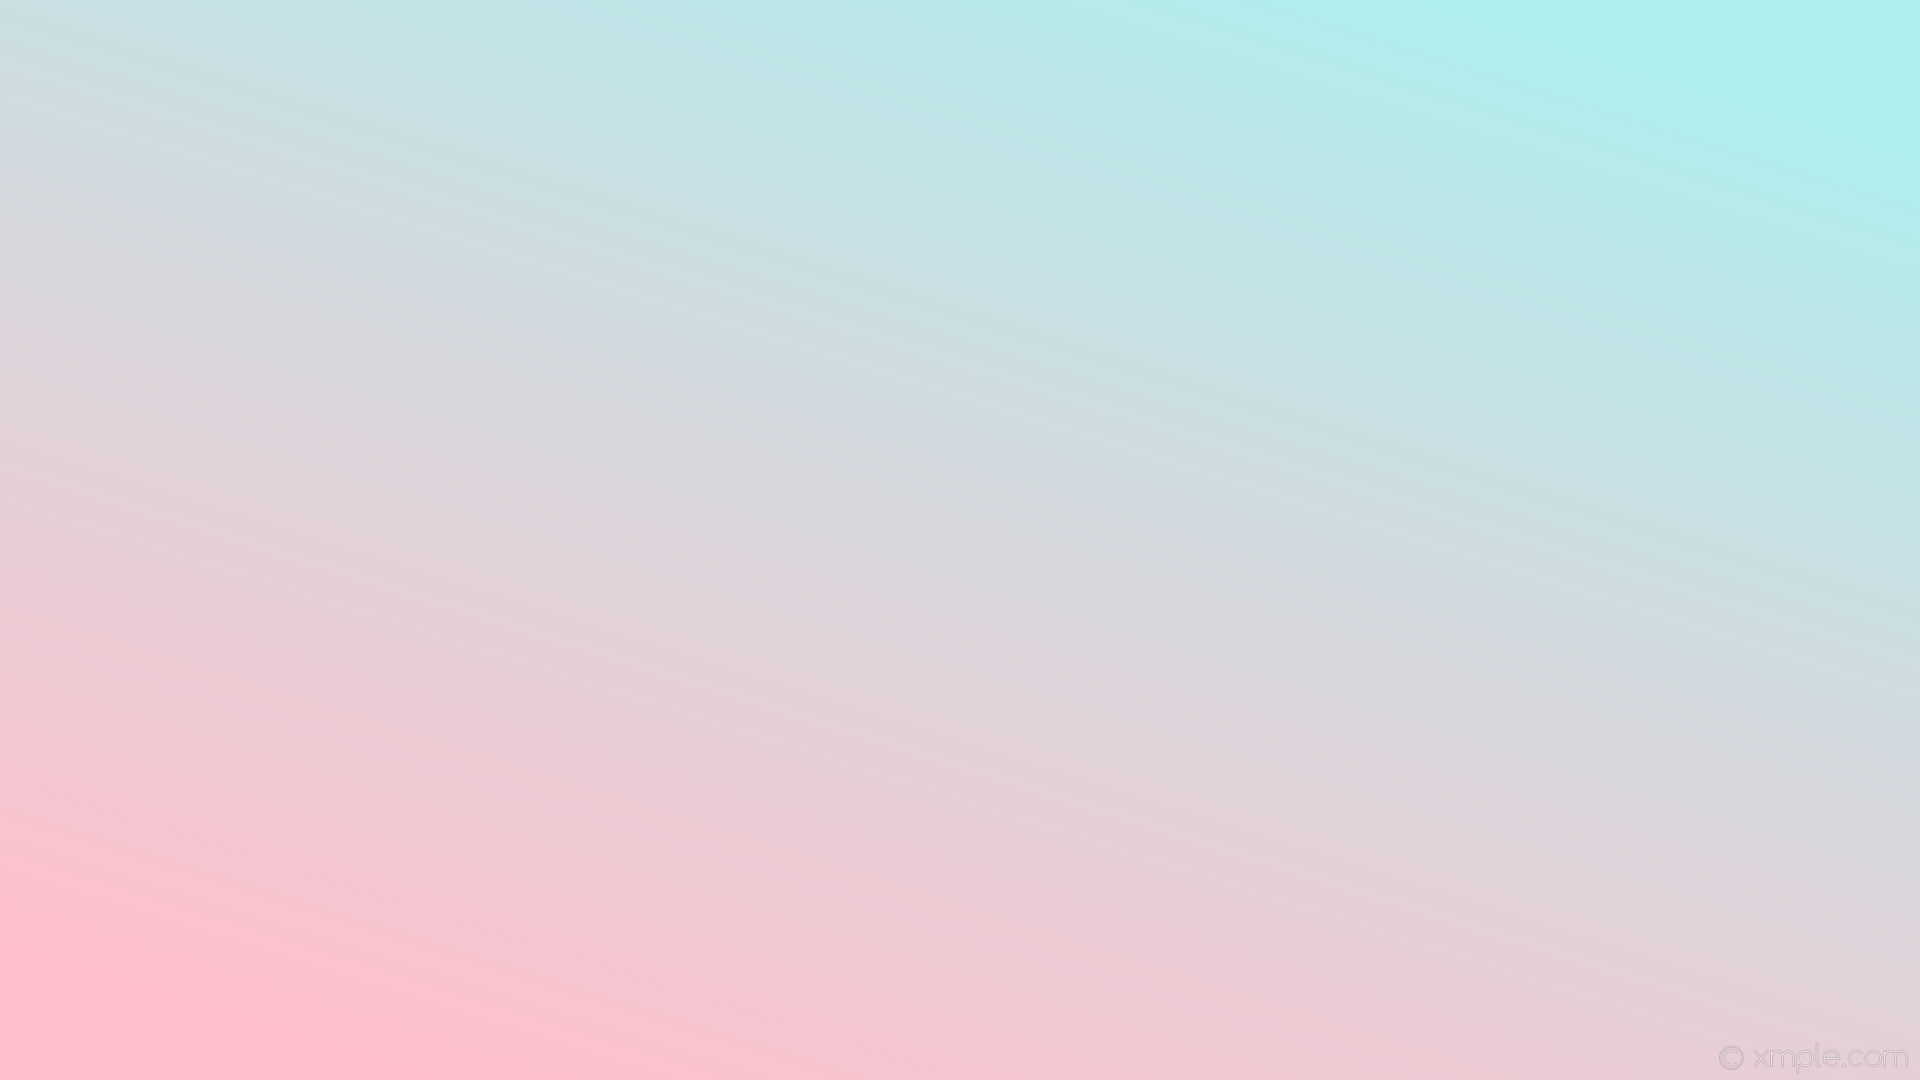 1920x1080 Pale Pink Wallpaper